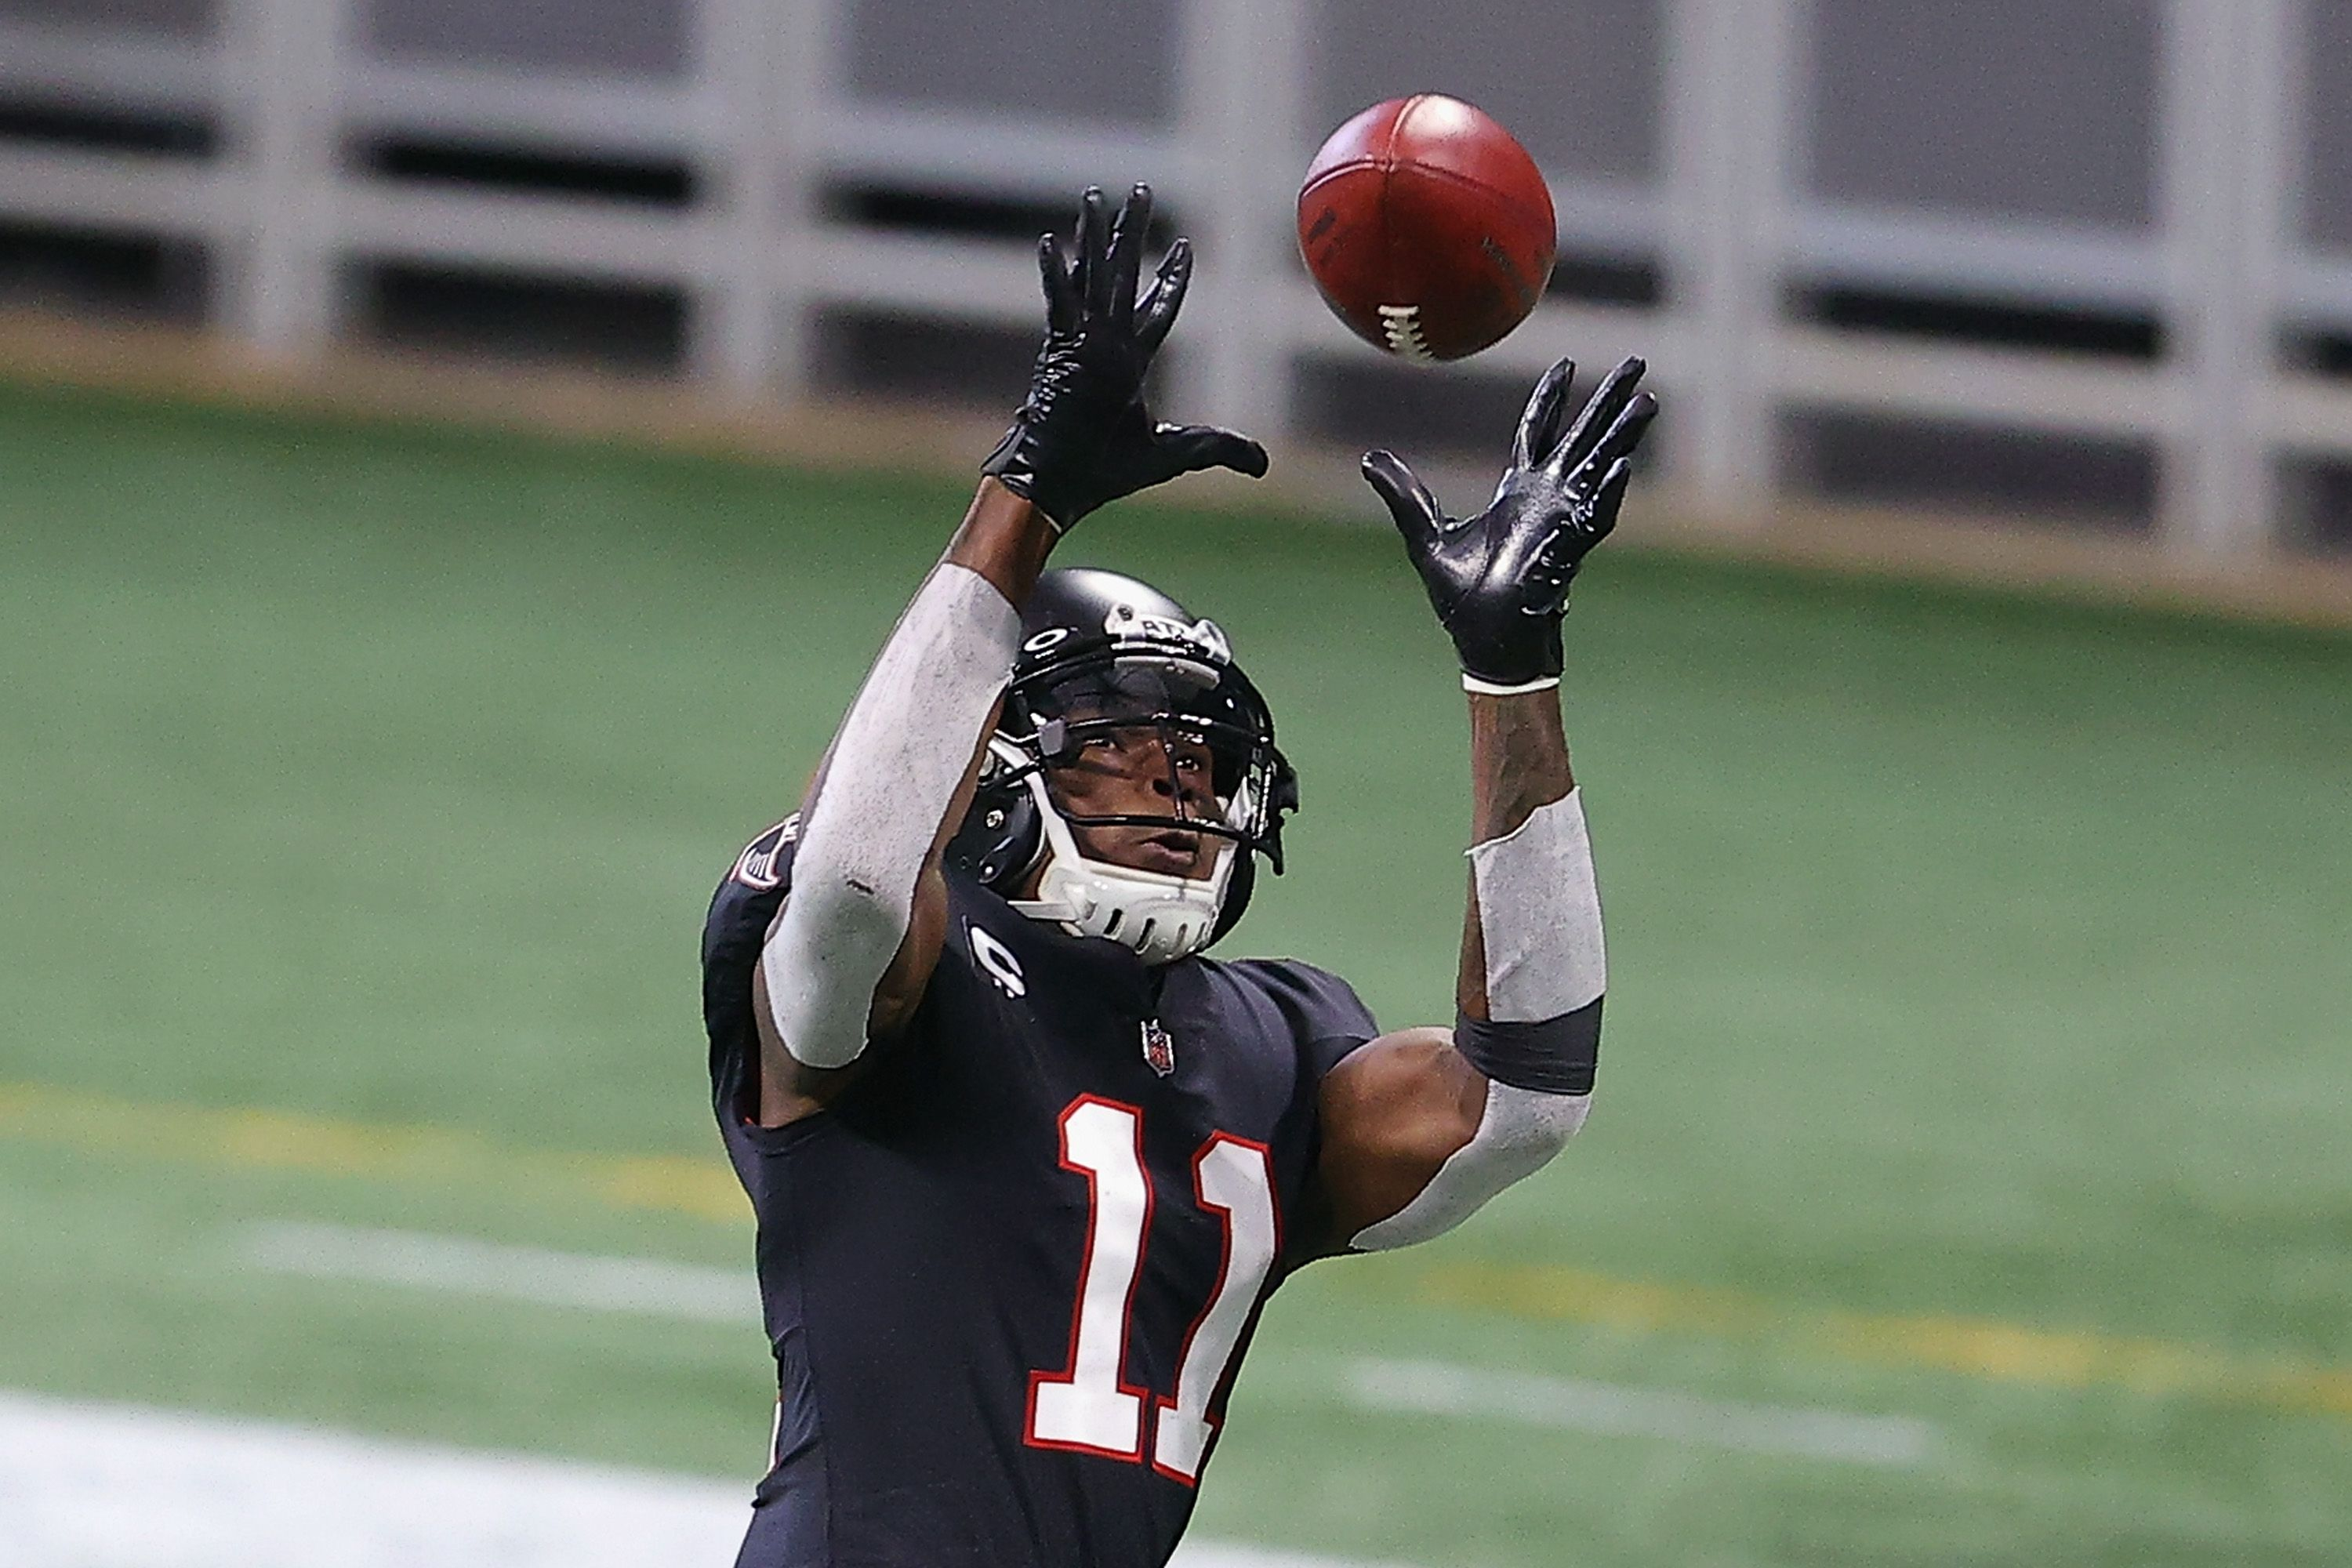 Julio Jones catches a pass in an NFL game.